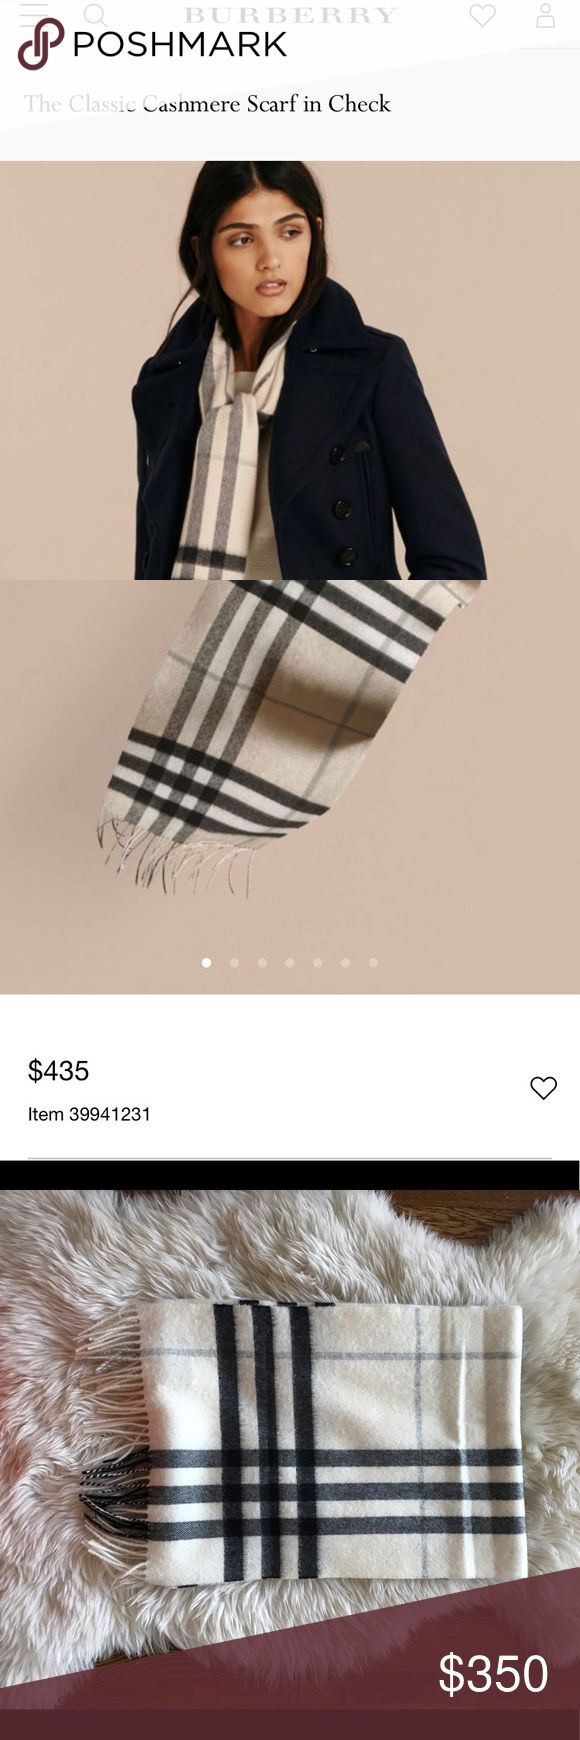 Burberry Cashmere Scarf in Natural White Beautiful Burberry classic cashmere scarf in Natural White. Still available online. Cream background with light gray and black check. Only worn a few times. Great Condition! Burberry Accessories Scarves & Wraps